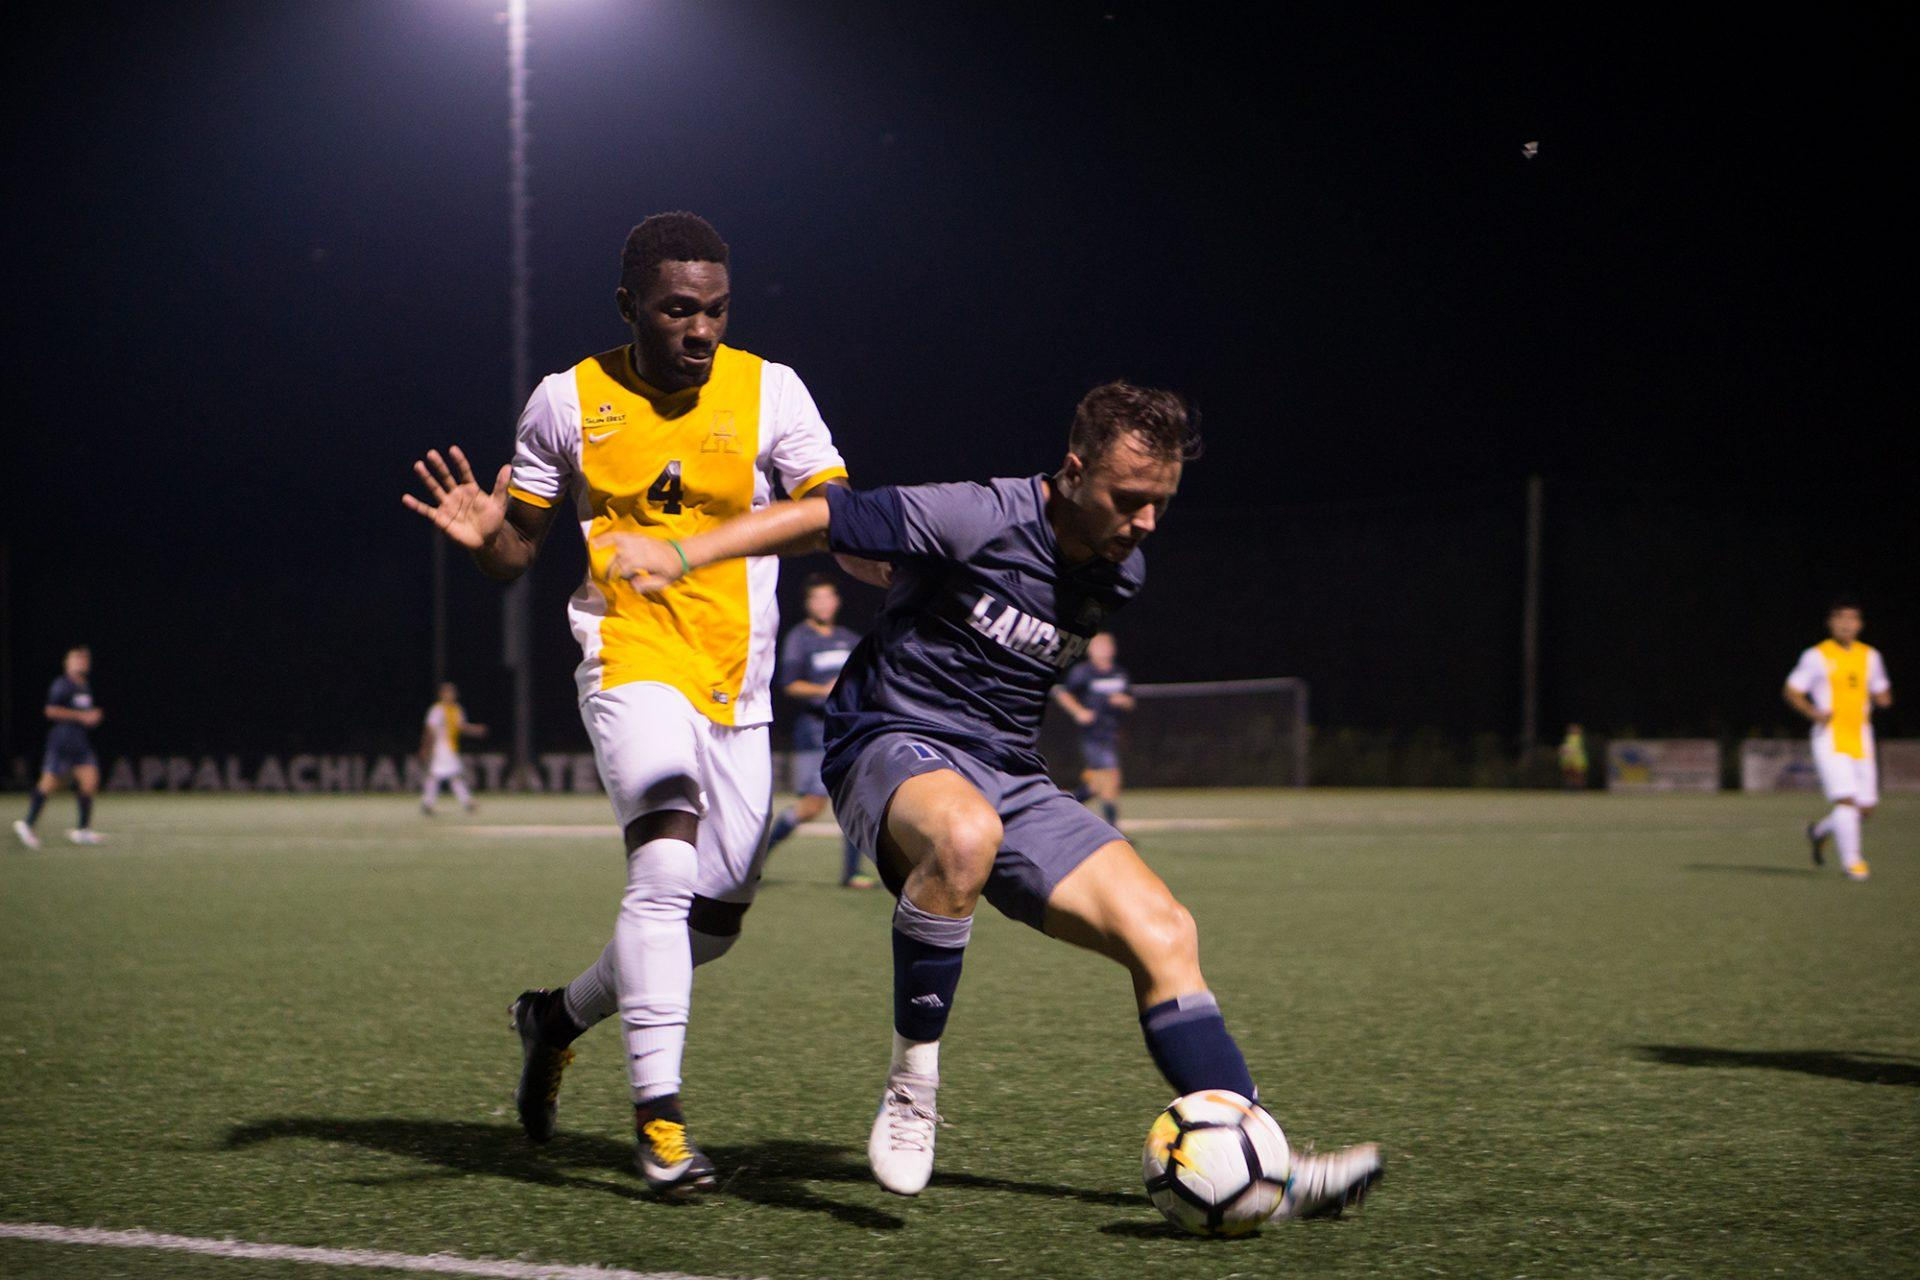 Chasteen and the Mountaineers get first shutout of the season